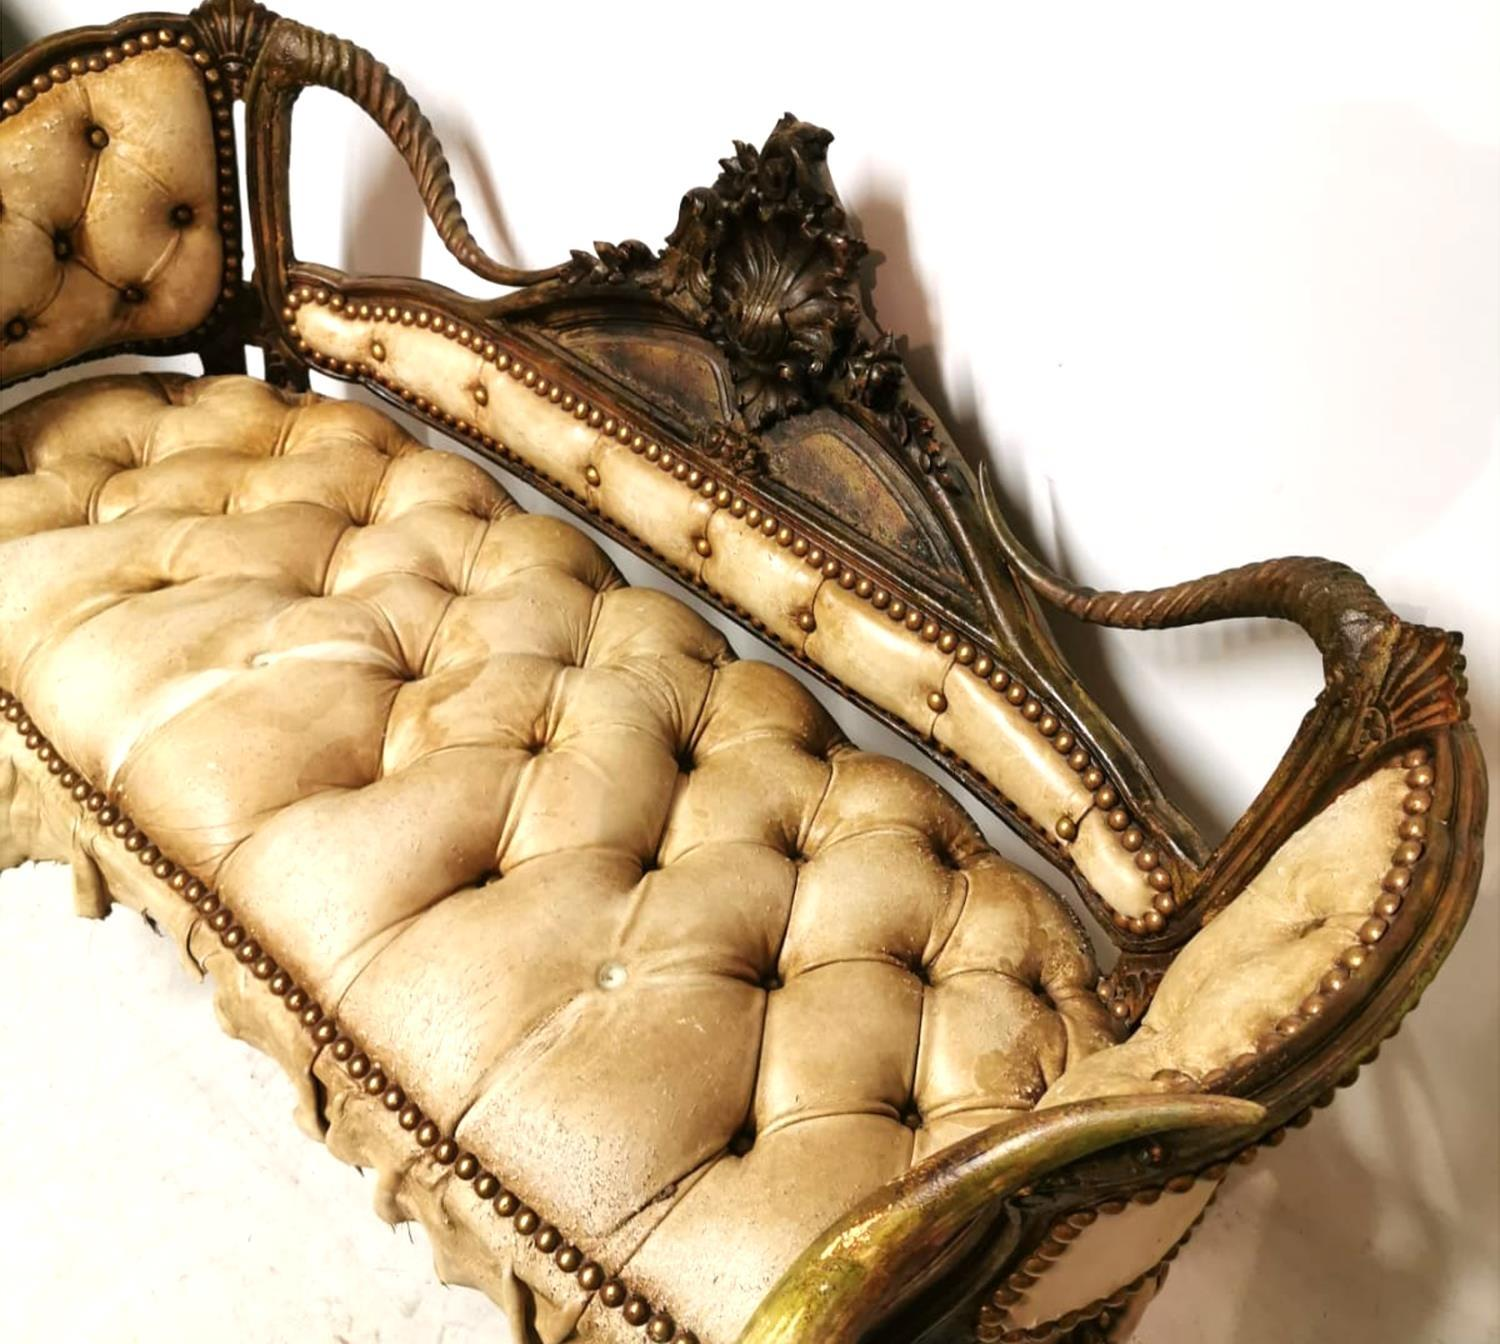 Lot 717 - A CONTINENTAL TWO SEAT SETTEE With carved central cartouche flanked by horns, upholstered in a cream